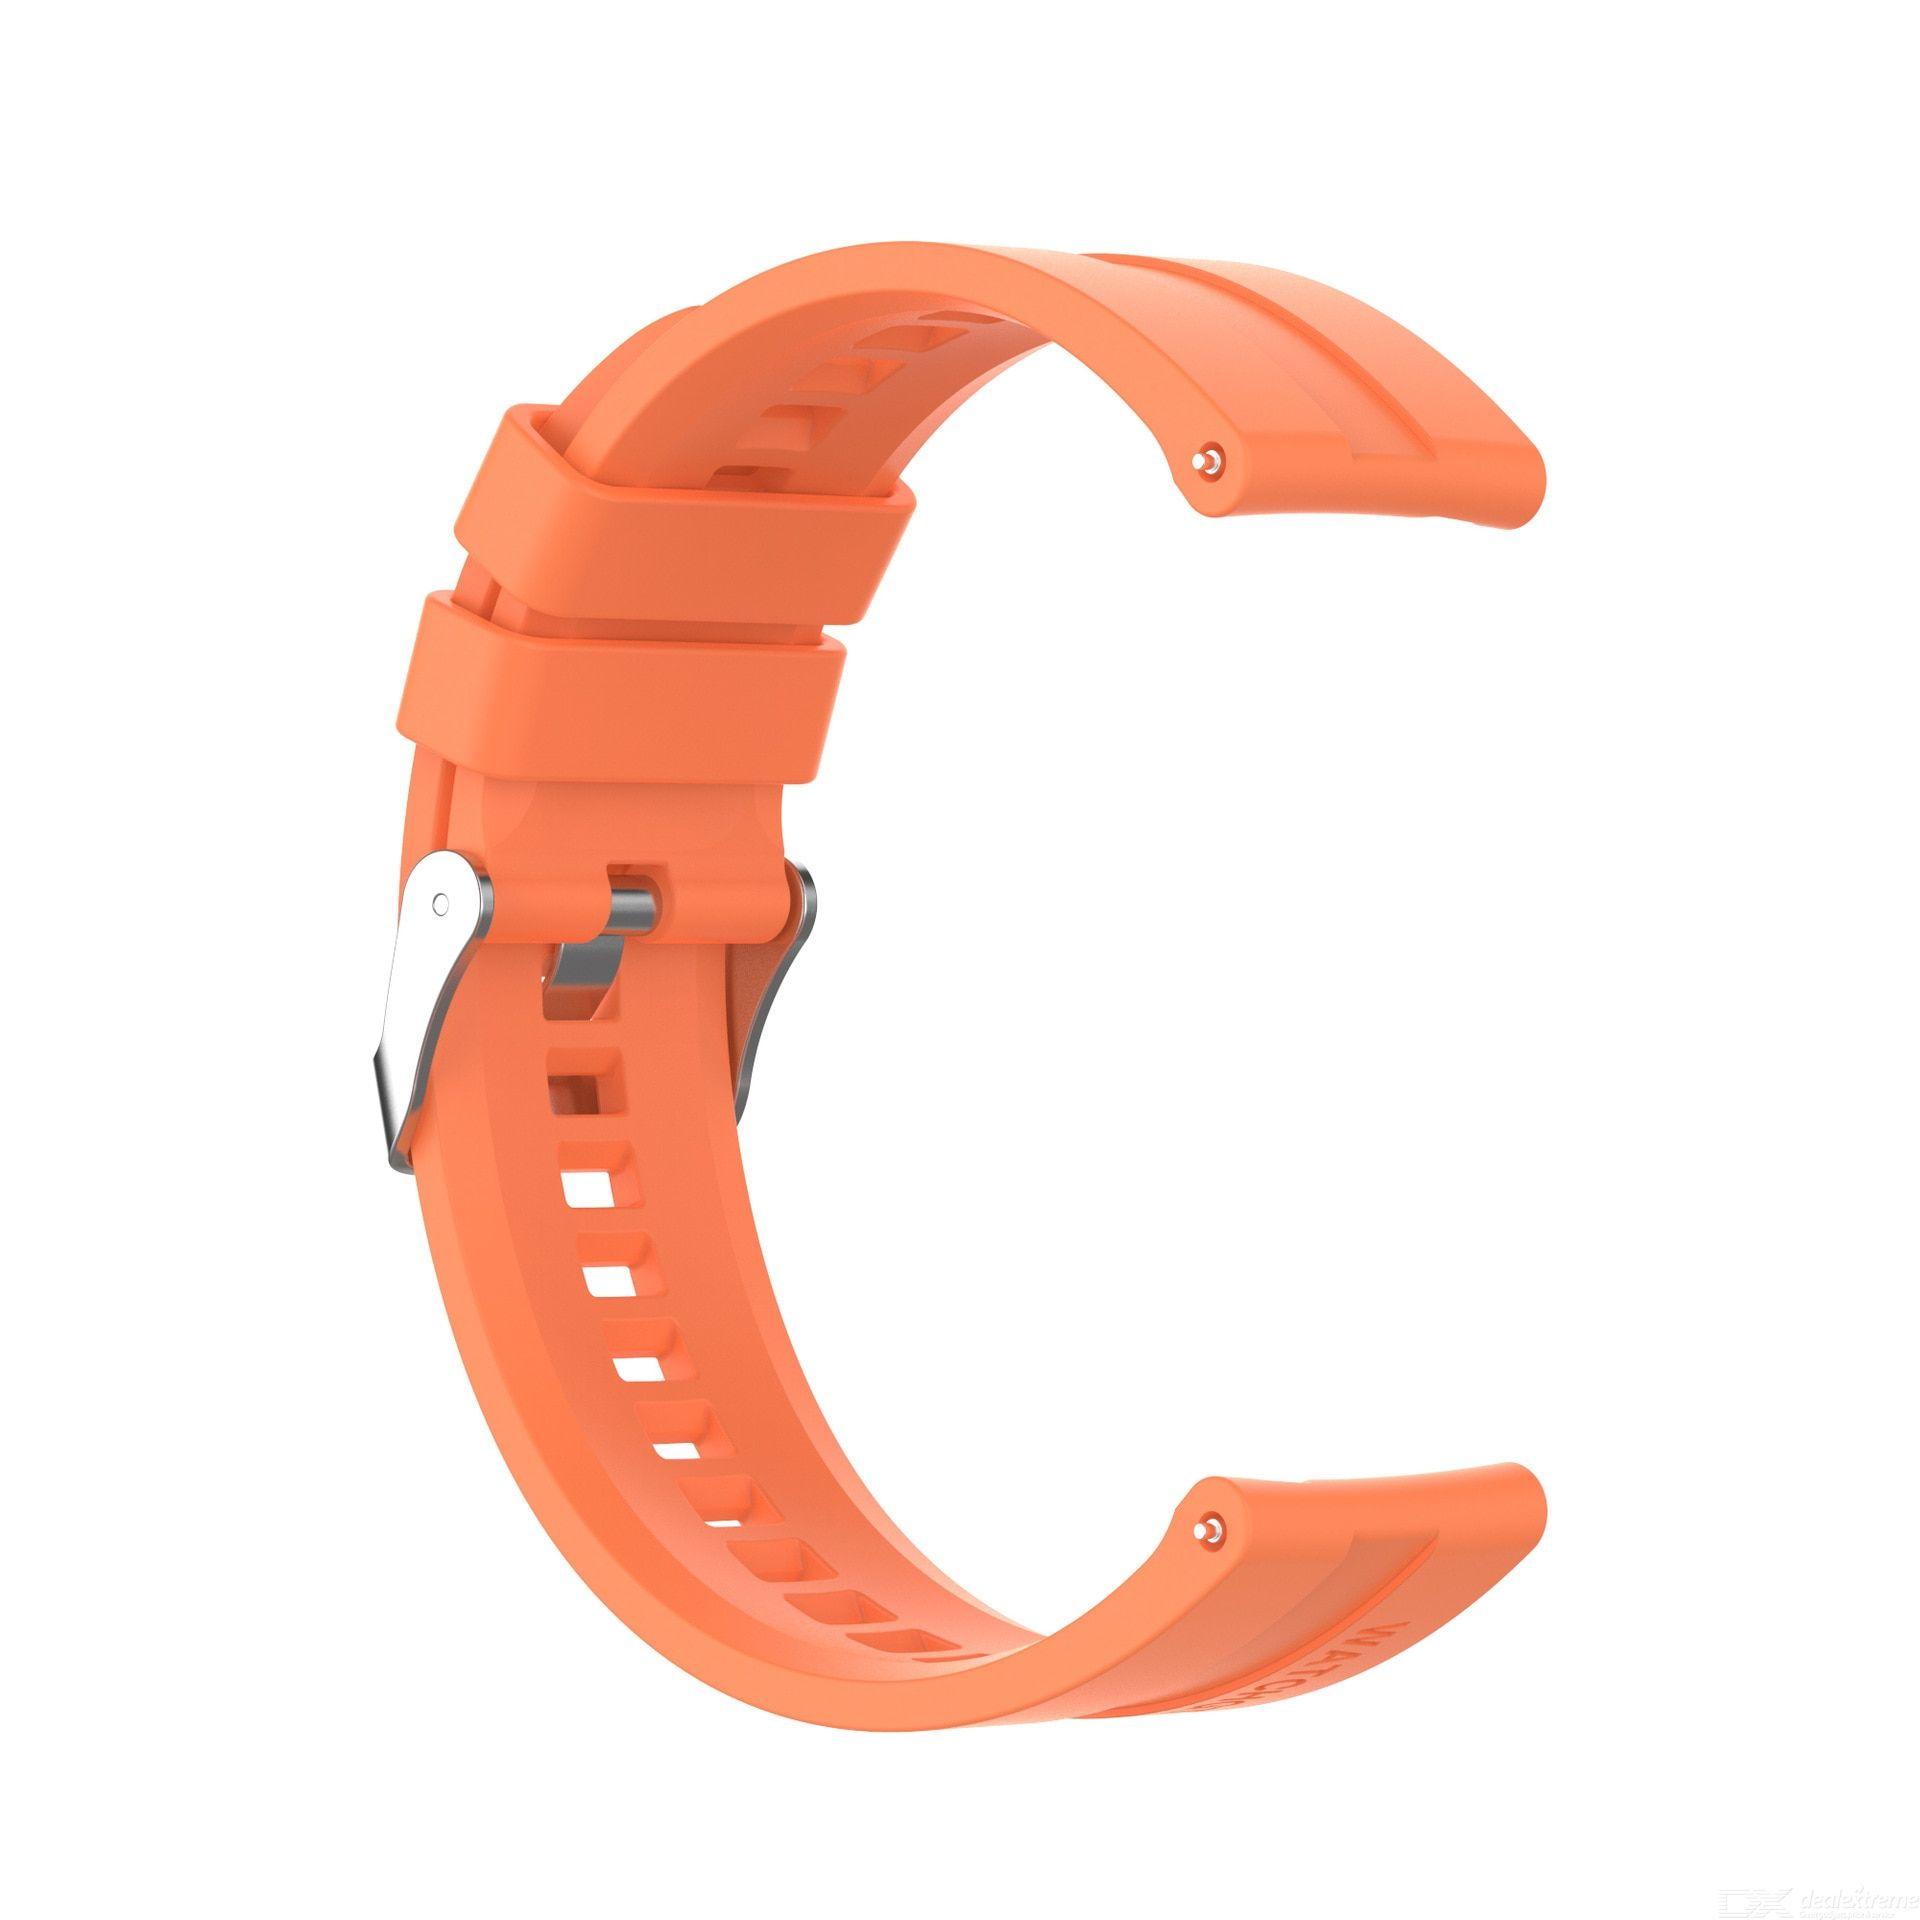 Silicone Watch Band Wrist Strap Replacement For Amazfit GTS 2e/GTS 2mini